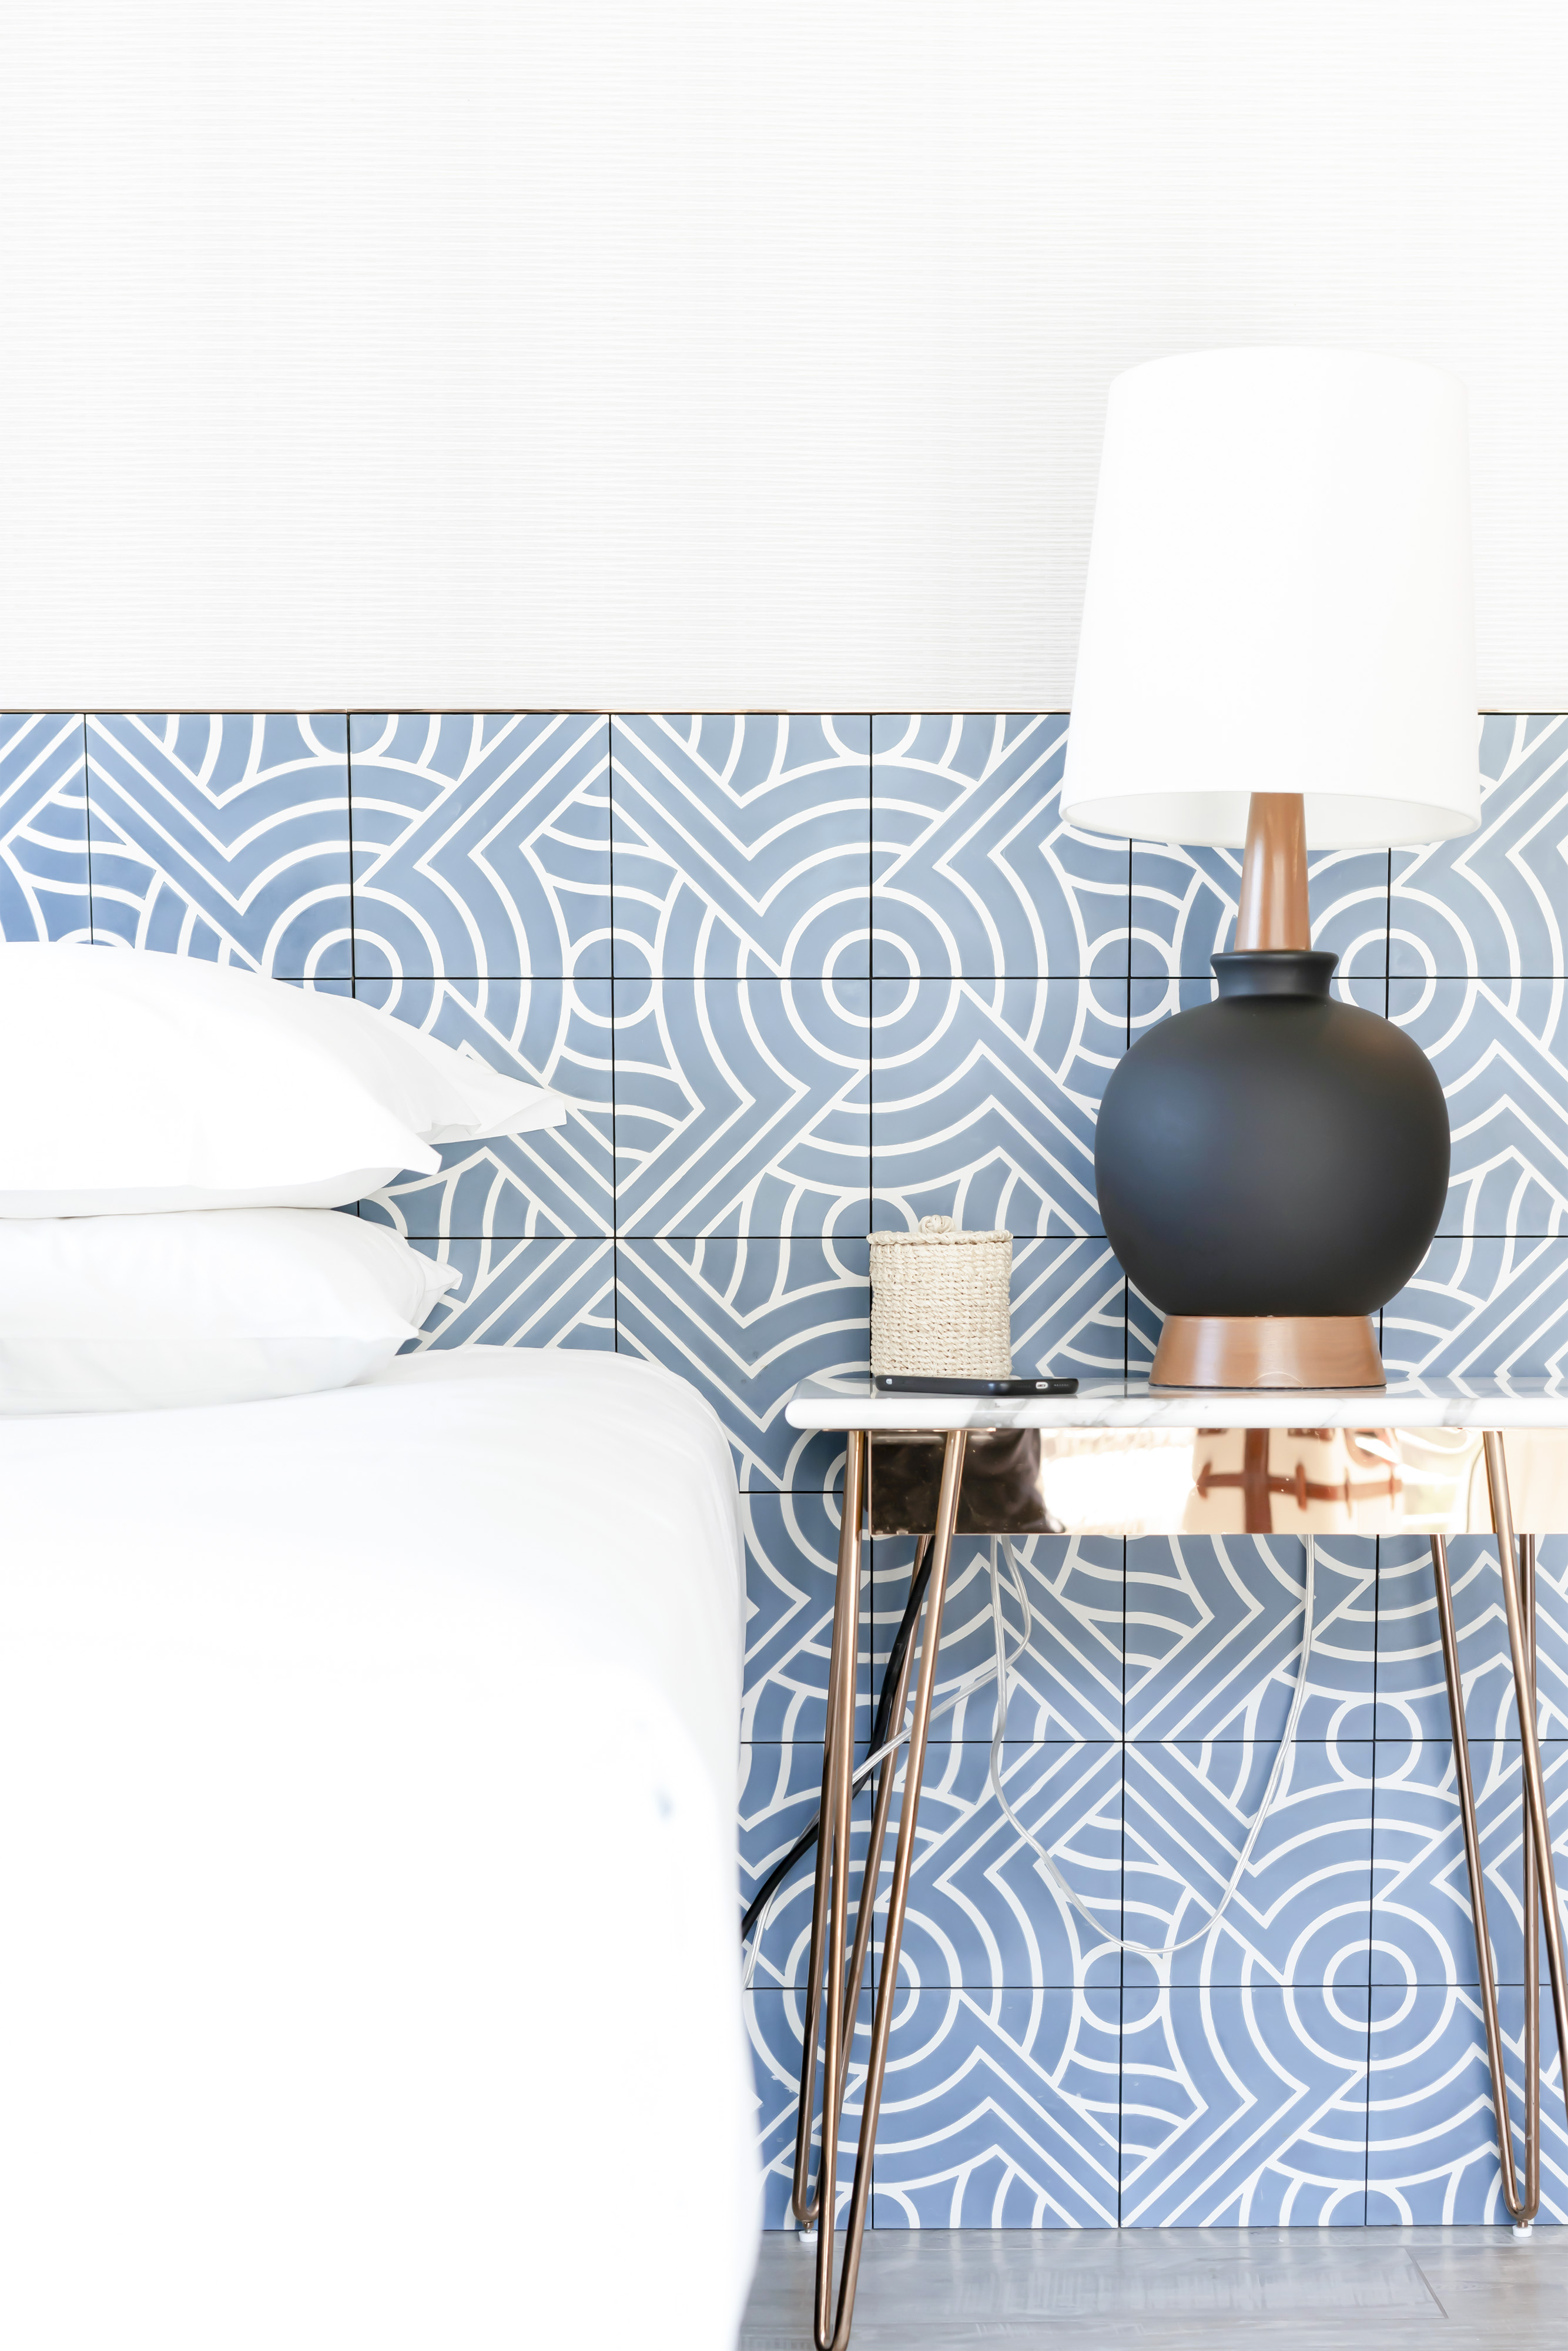 Over 85 Resources To Start Or Grow Your Interior Decorating Business Creative Pursuit School